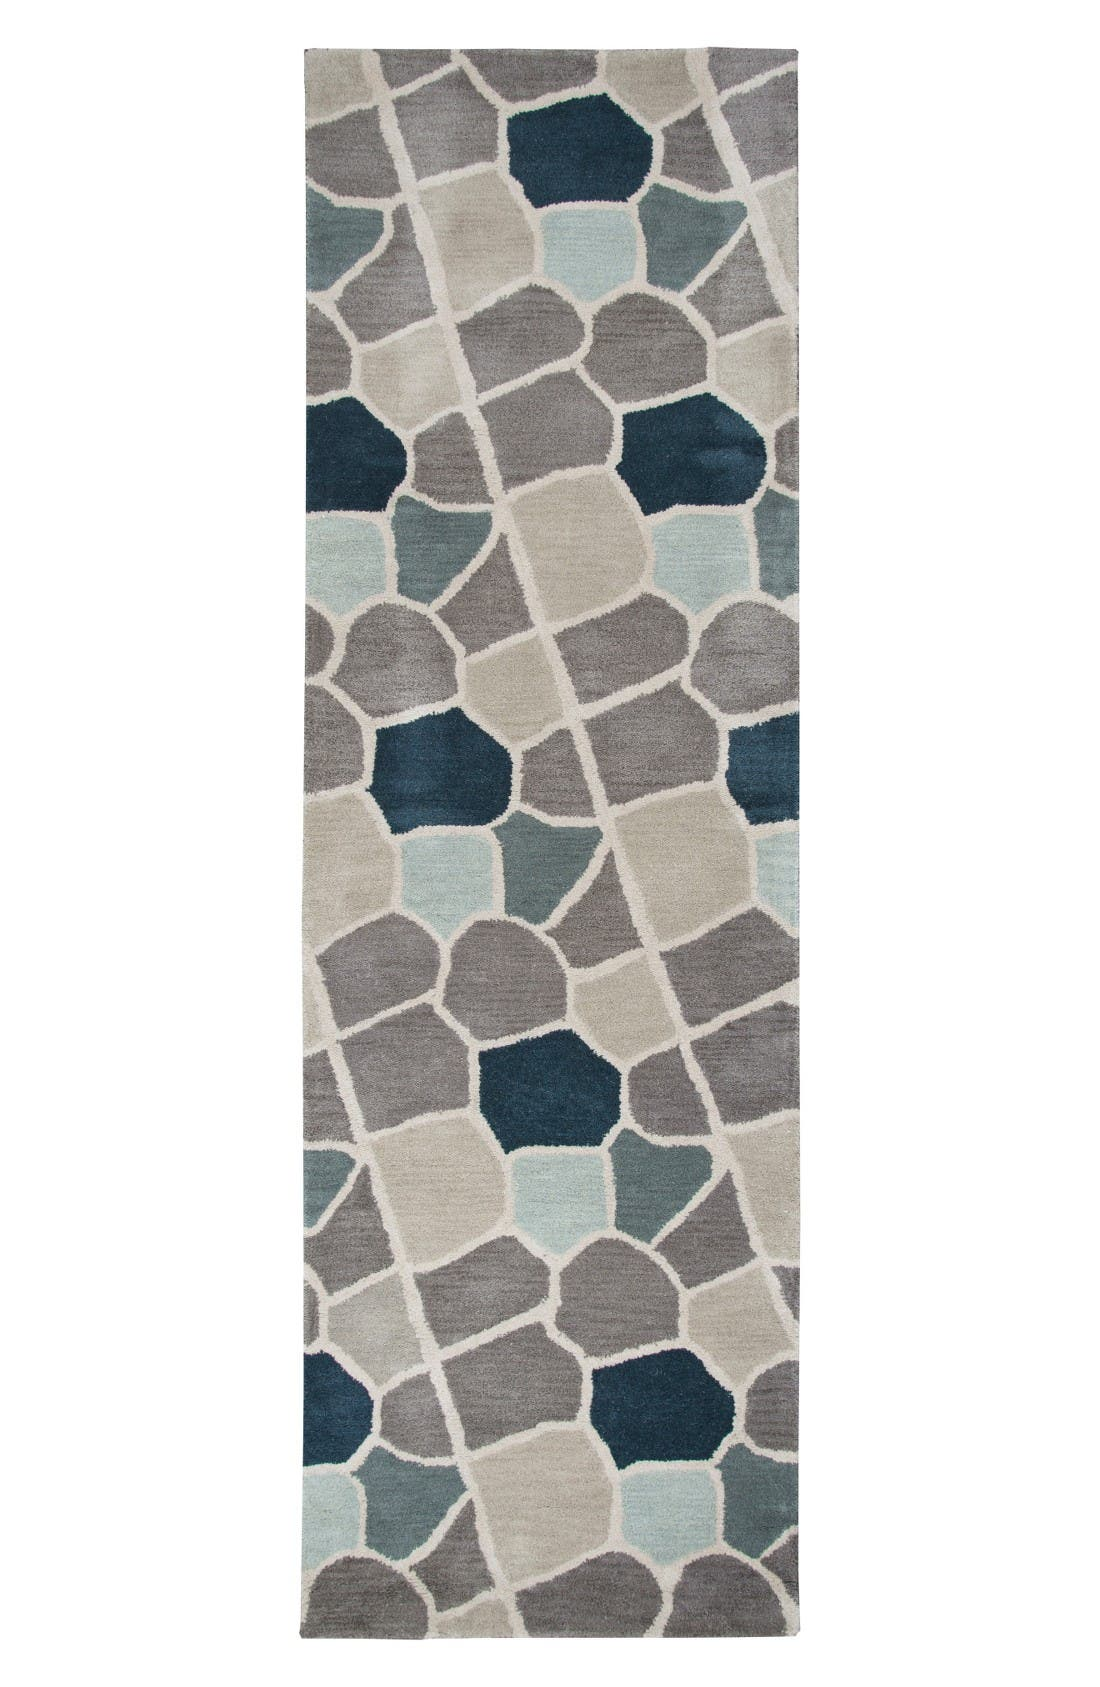 Cobble Geo Hand Tufted Wool Area Rug,                             Alternate thumbnail 4, color,                             Grey/ Blue